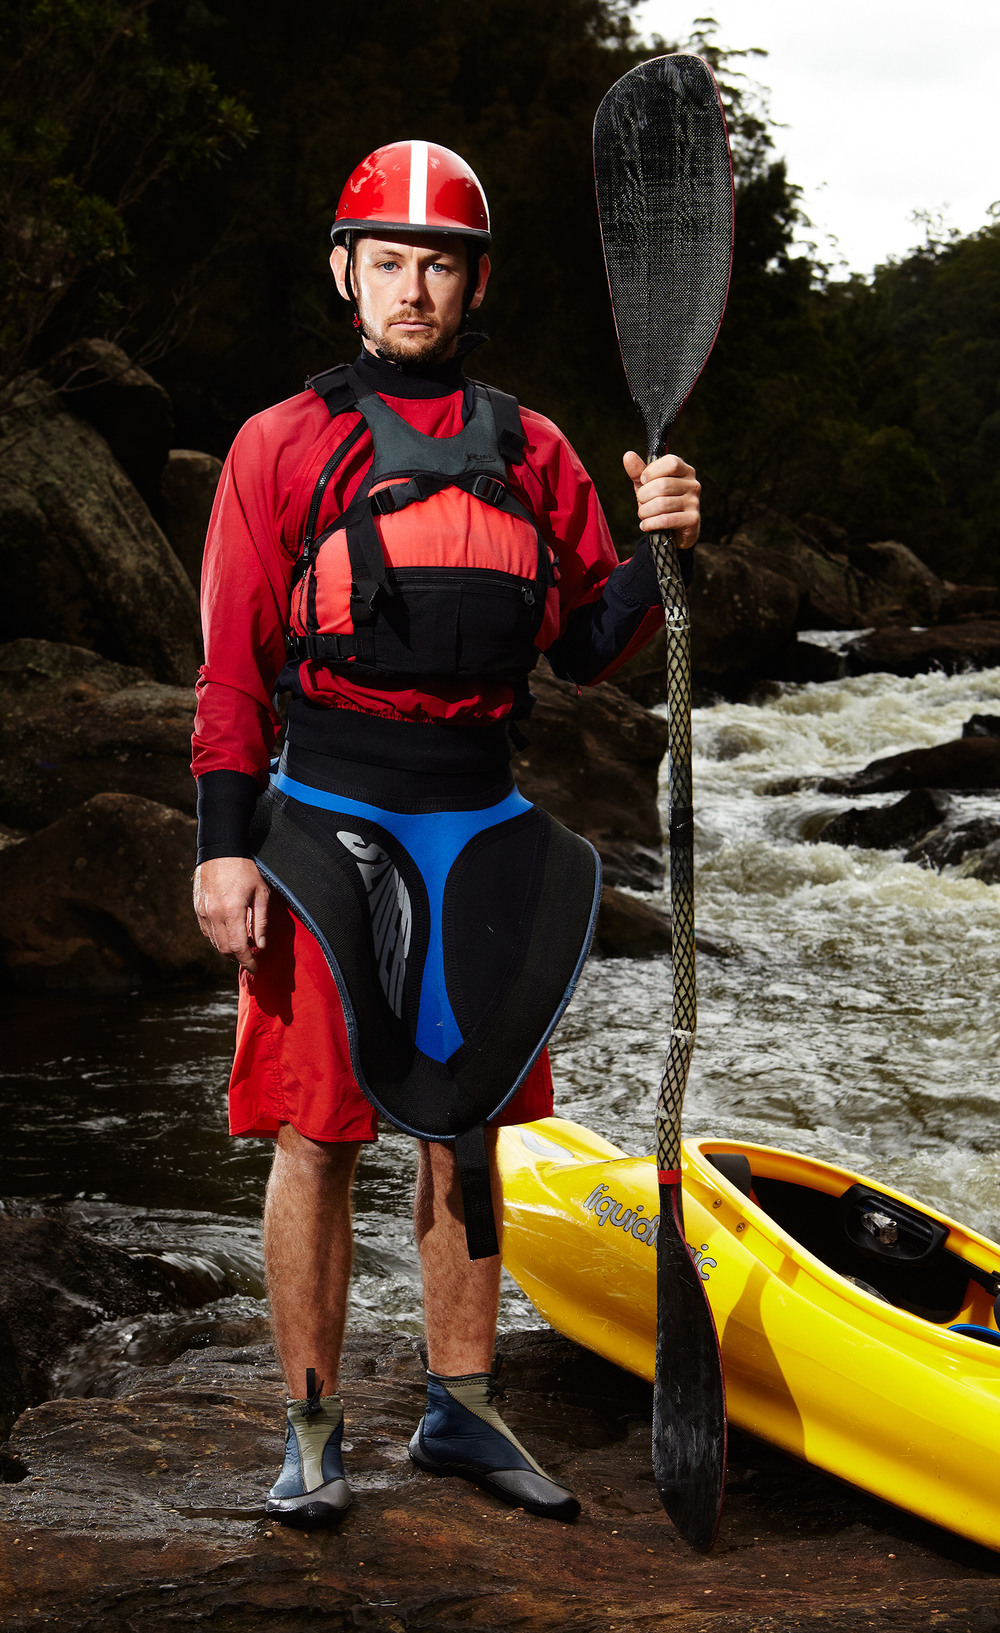 Tom, kayaker